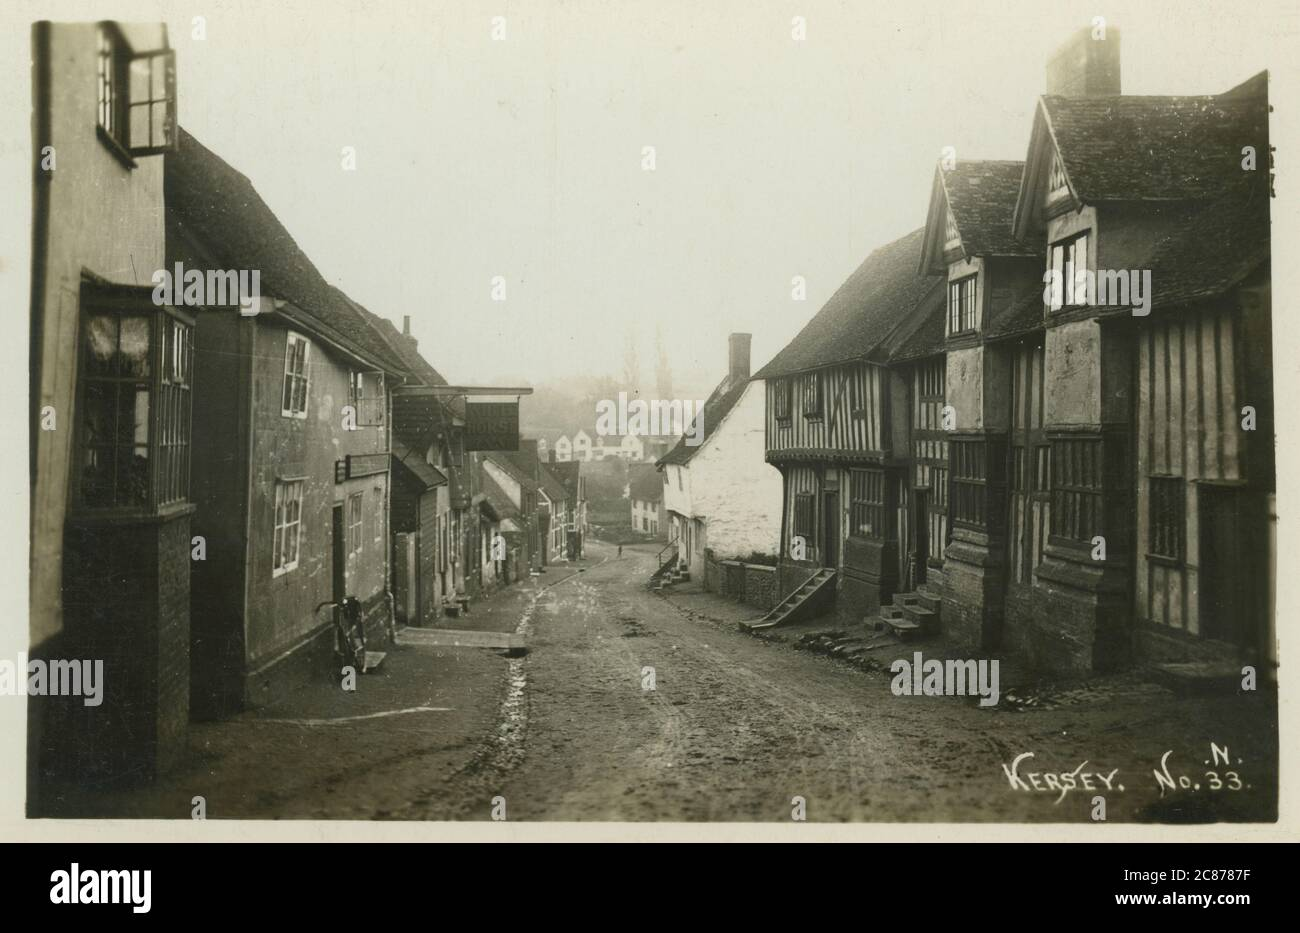 The Street, Kersey, Ipswich, Babergh, Suffolk, Angleterre. Date : 1900s Banque D'Images